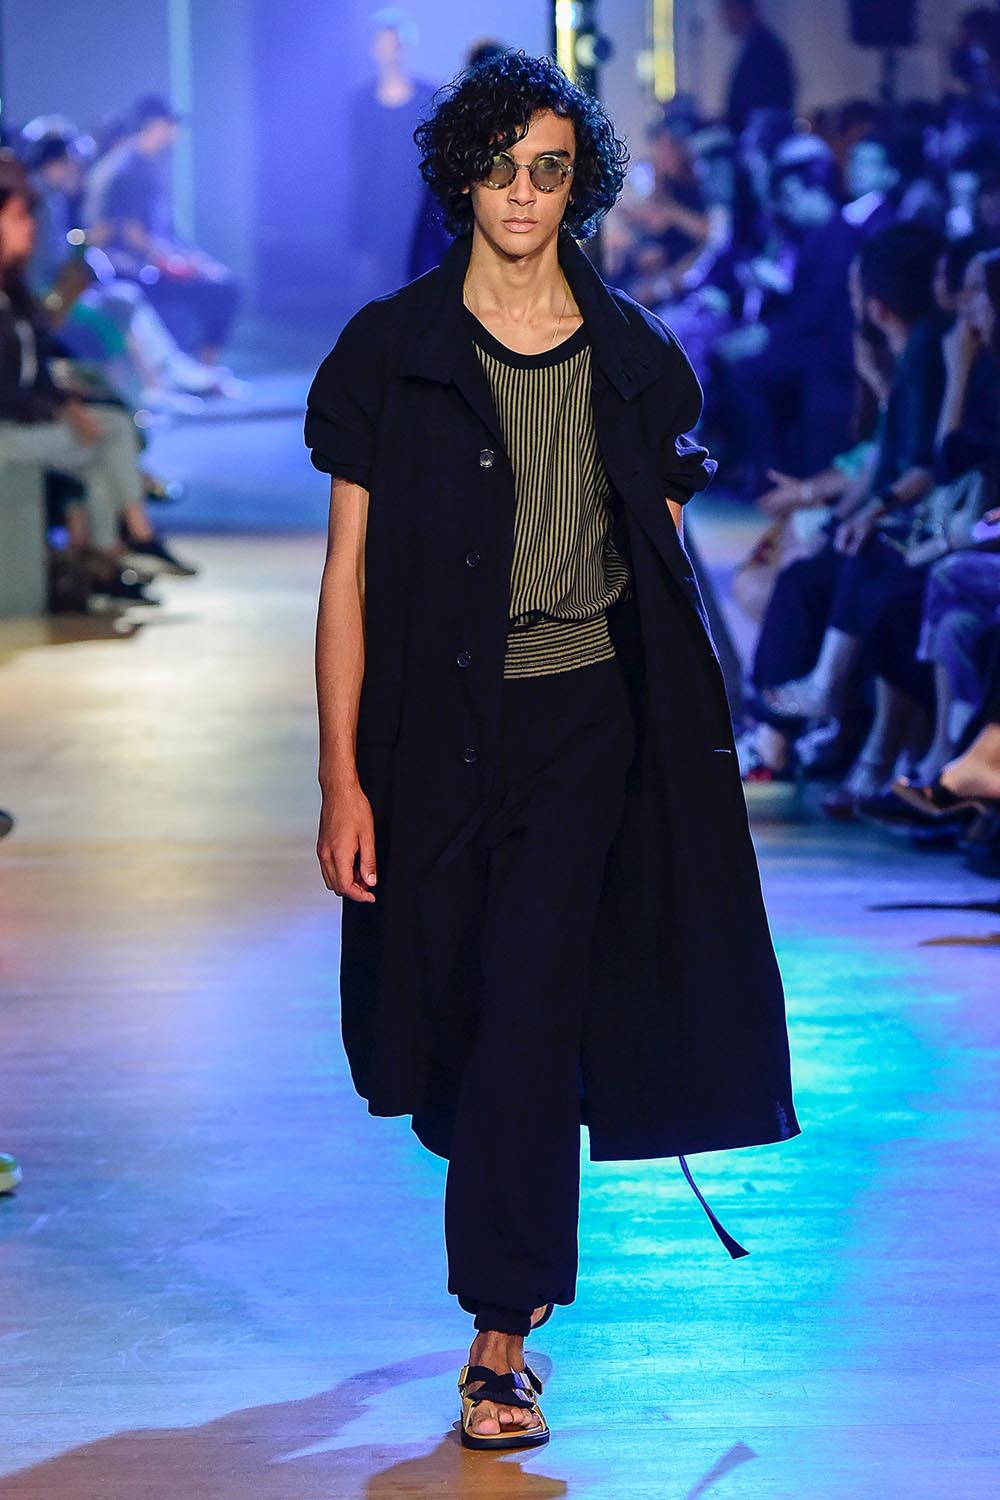 Cerruti 1881 Paris Fashion Week Men's SS19 - Sagaboi - Look 34